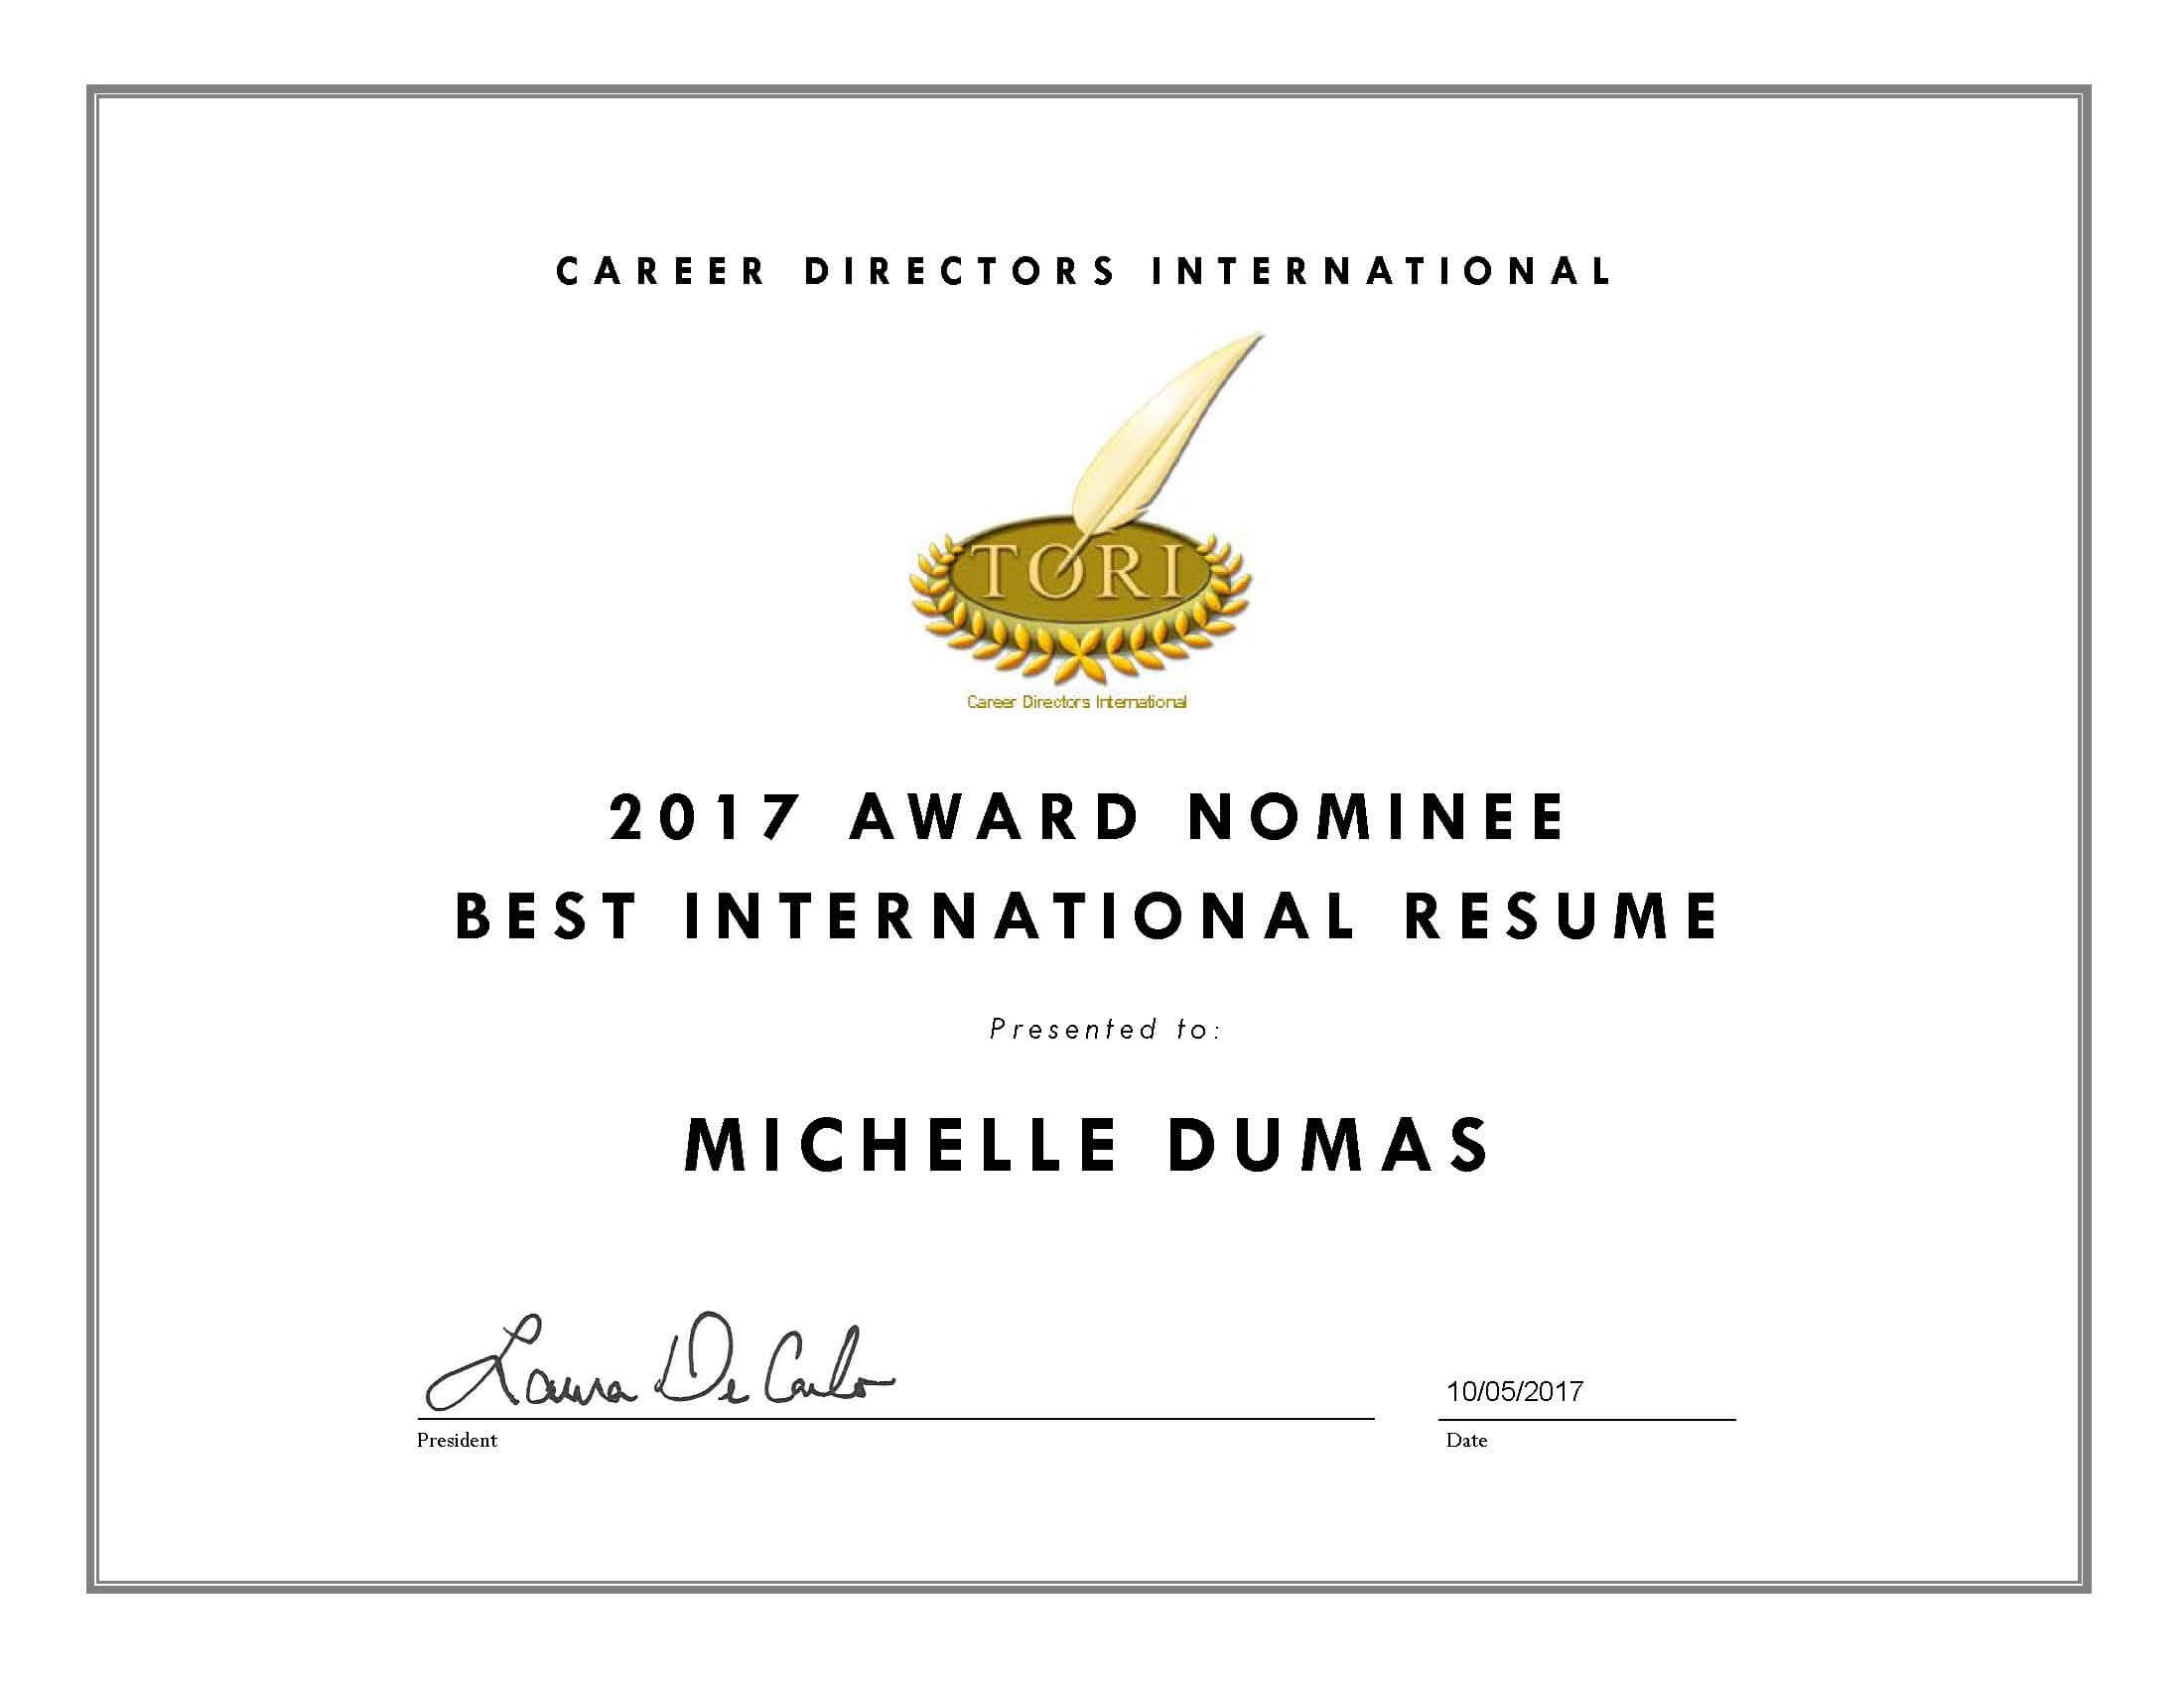 Michelle Dumas Nominated in Two Award Categories for CDI's